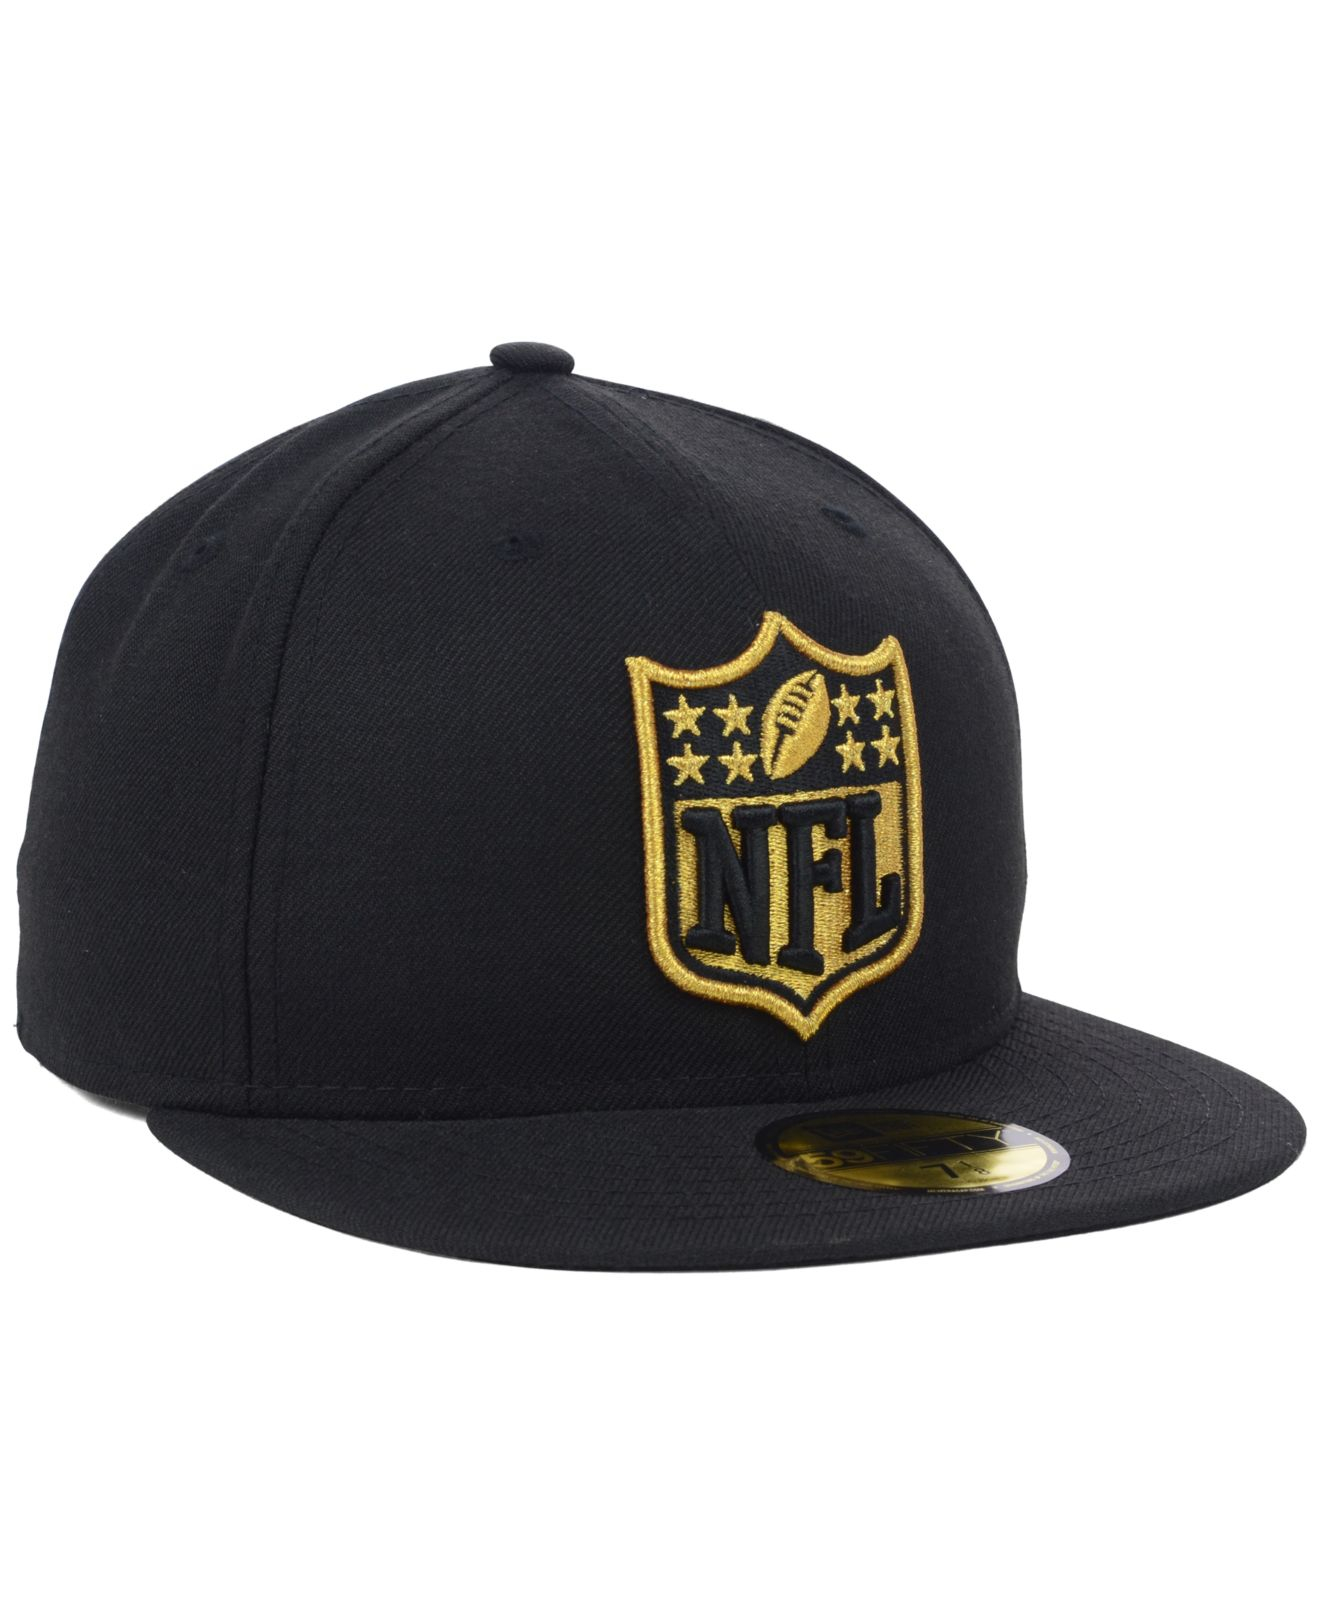 new era hindu single men Free shipping both ways on new era, hats, men, from our vast selection of styles fast delivery, and 24/7/365 real-person service with a smile click or call 800-927-7671.